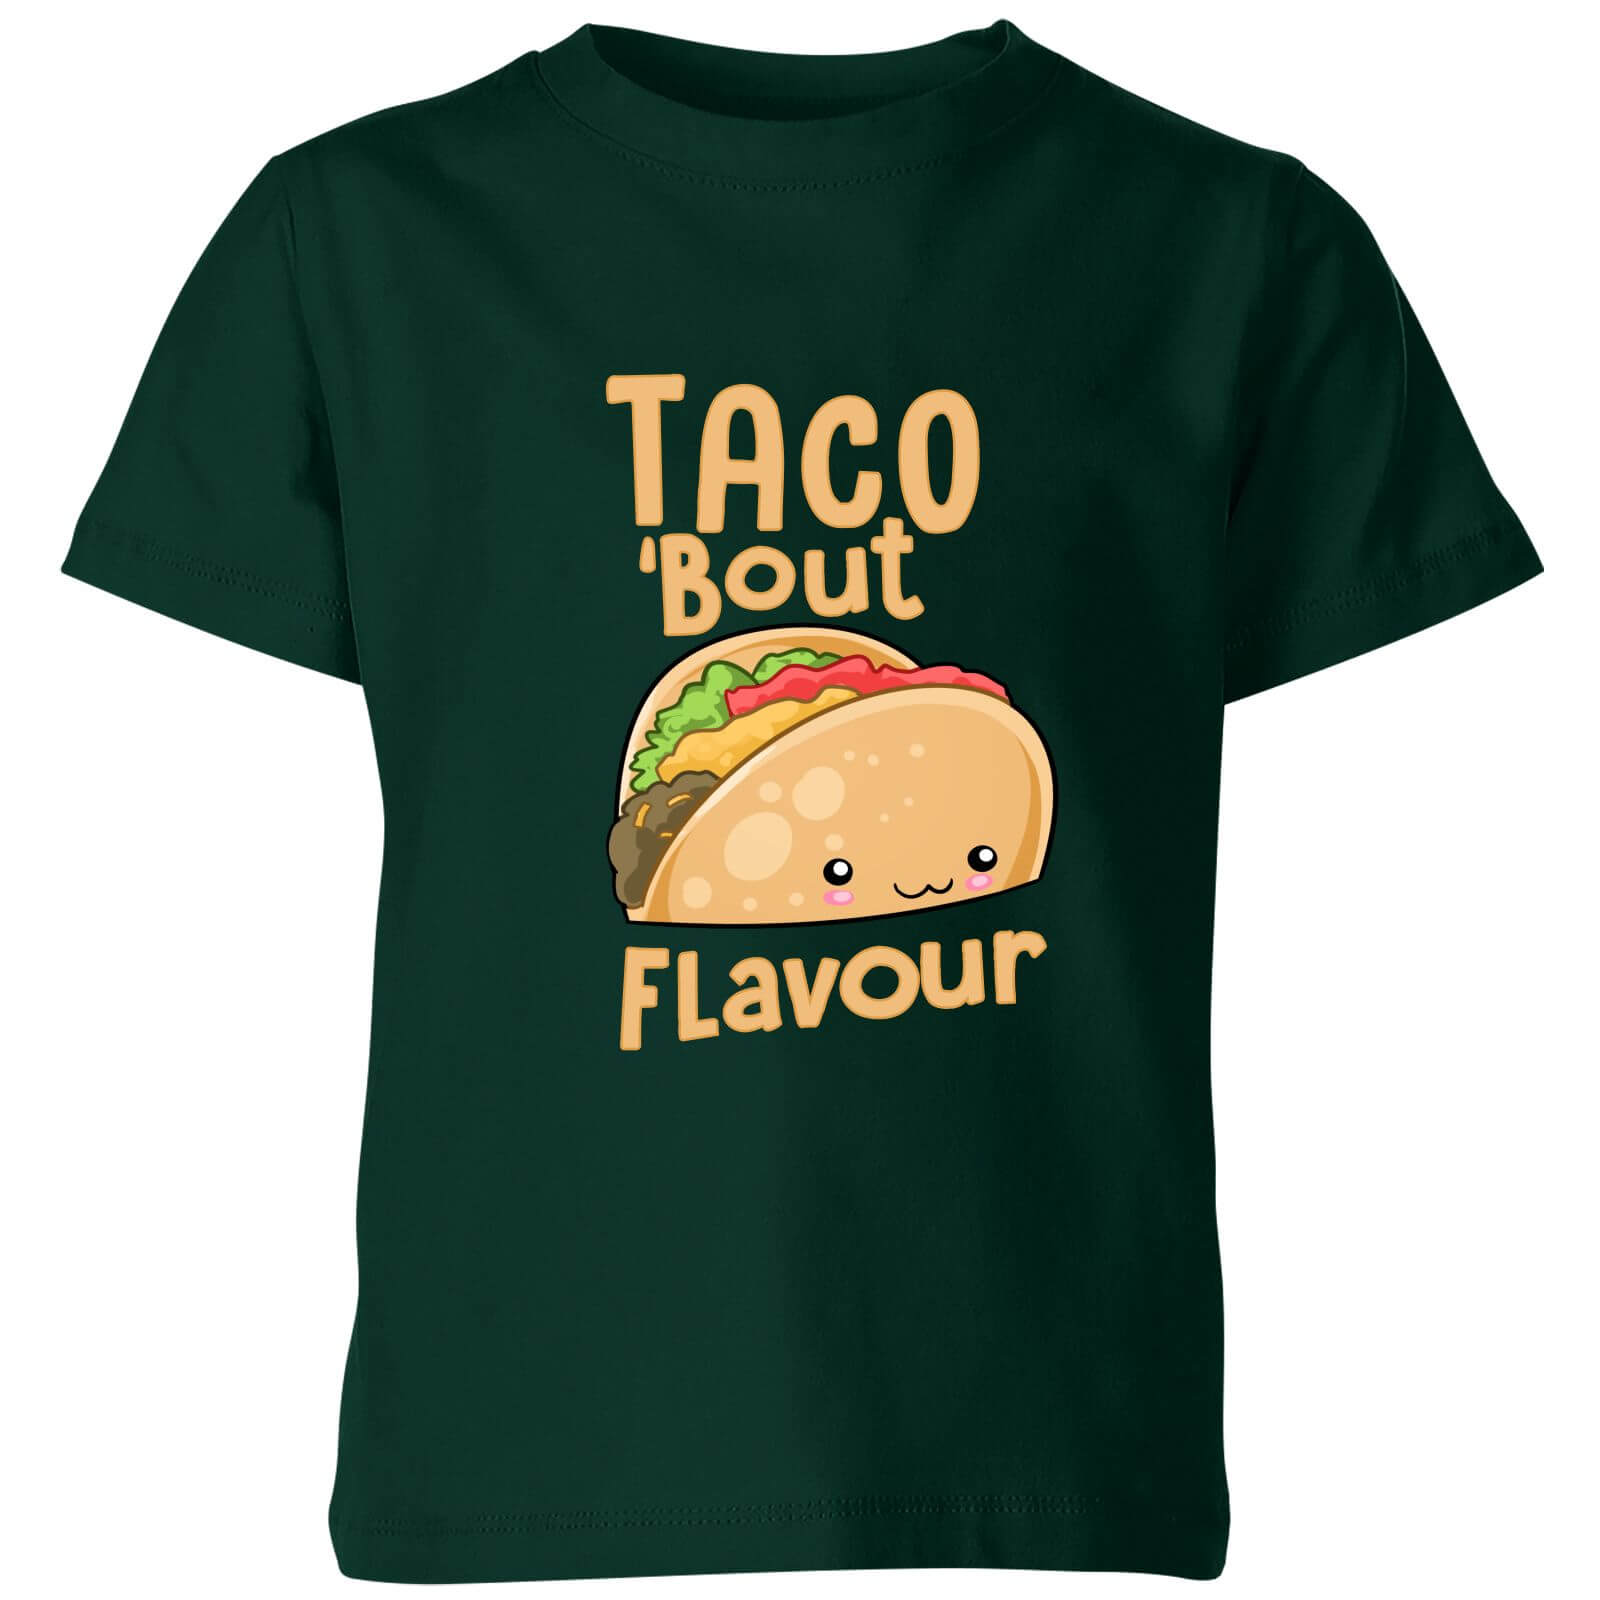 Taco Bout Flavour Kids T-Shirt - Forest Green